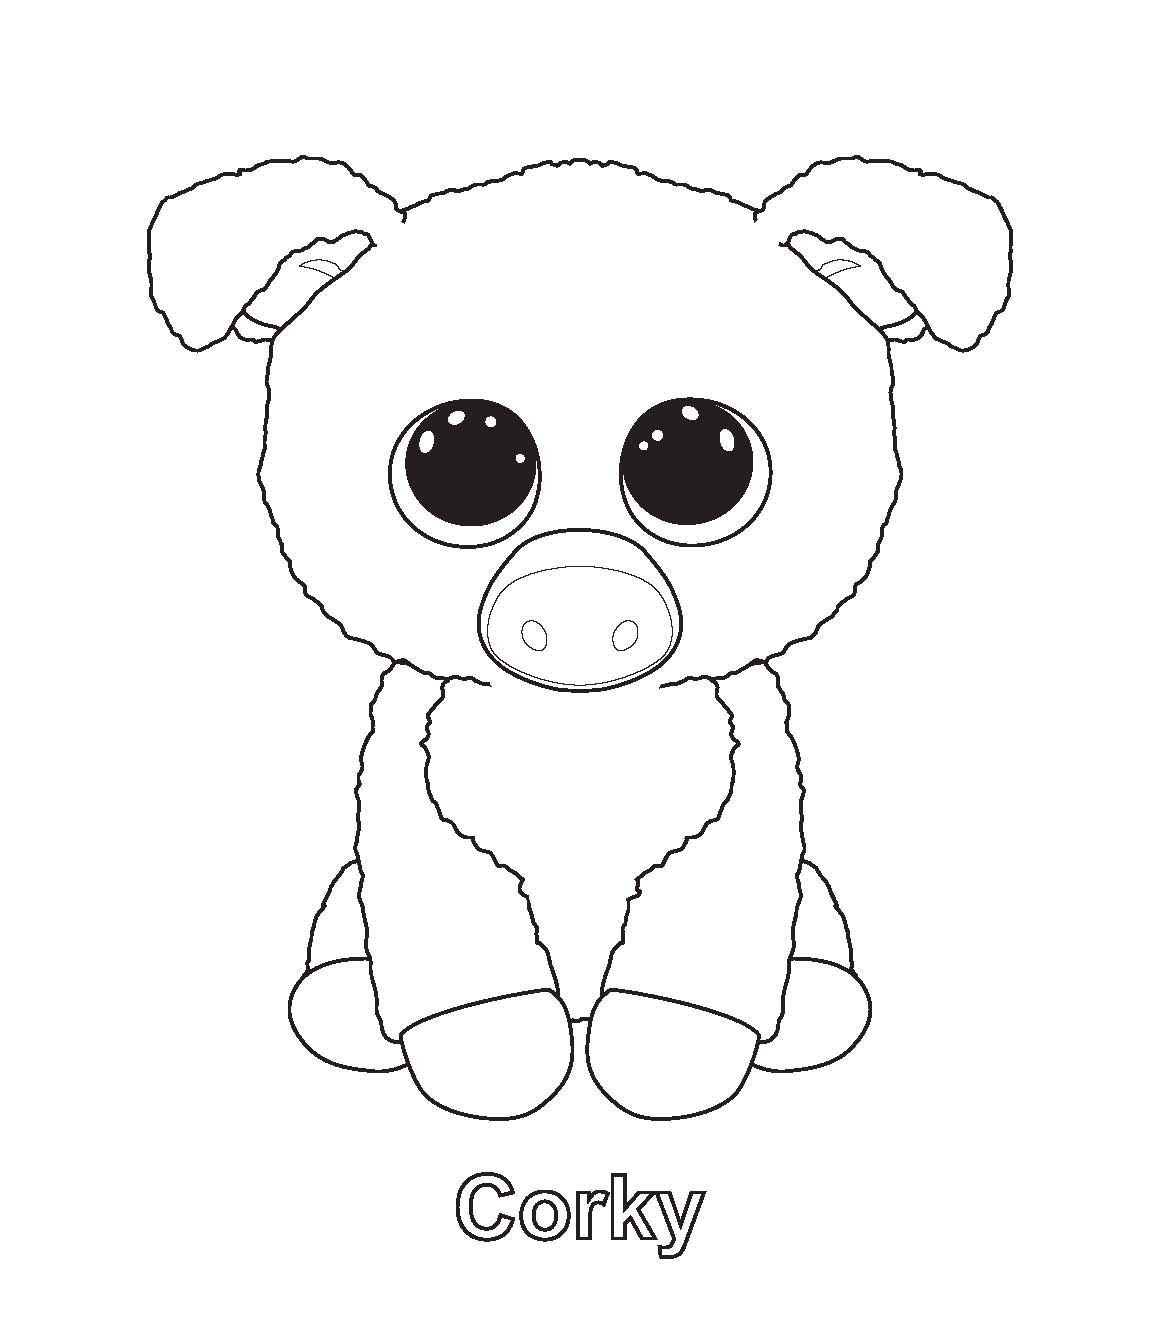 10 beanie boo coloring pages printable, beanie boo havana